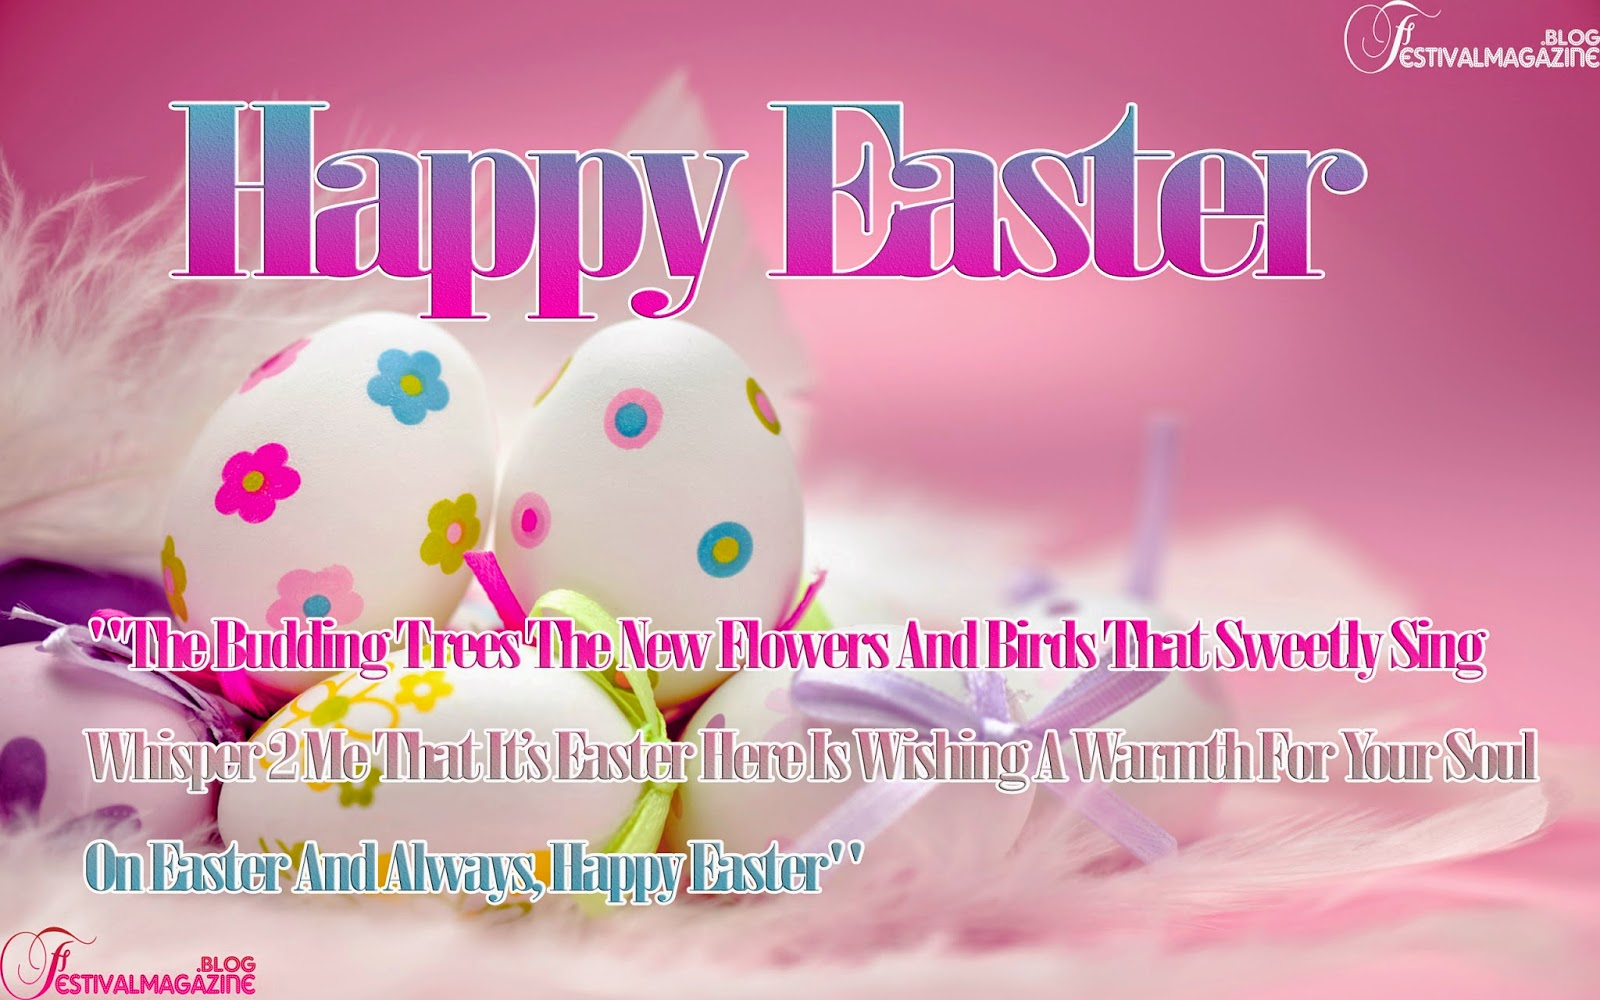 Festival Magazine Happy Easter Day Wallpapers With Greetings Quotes